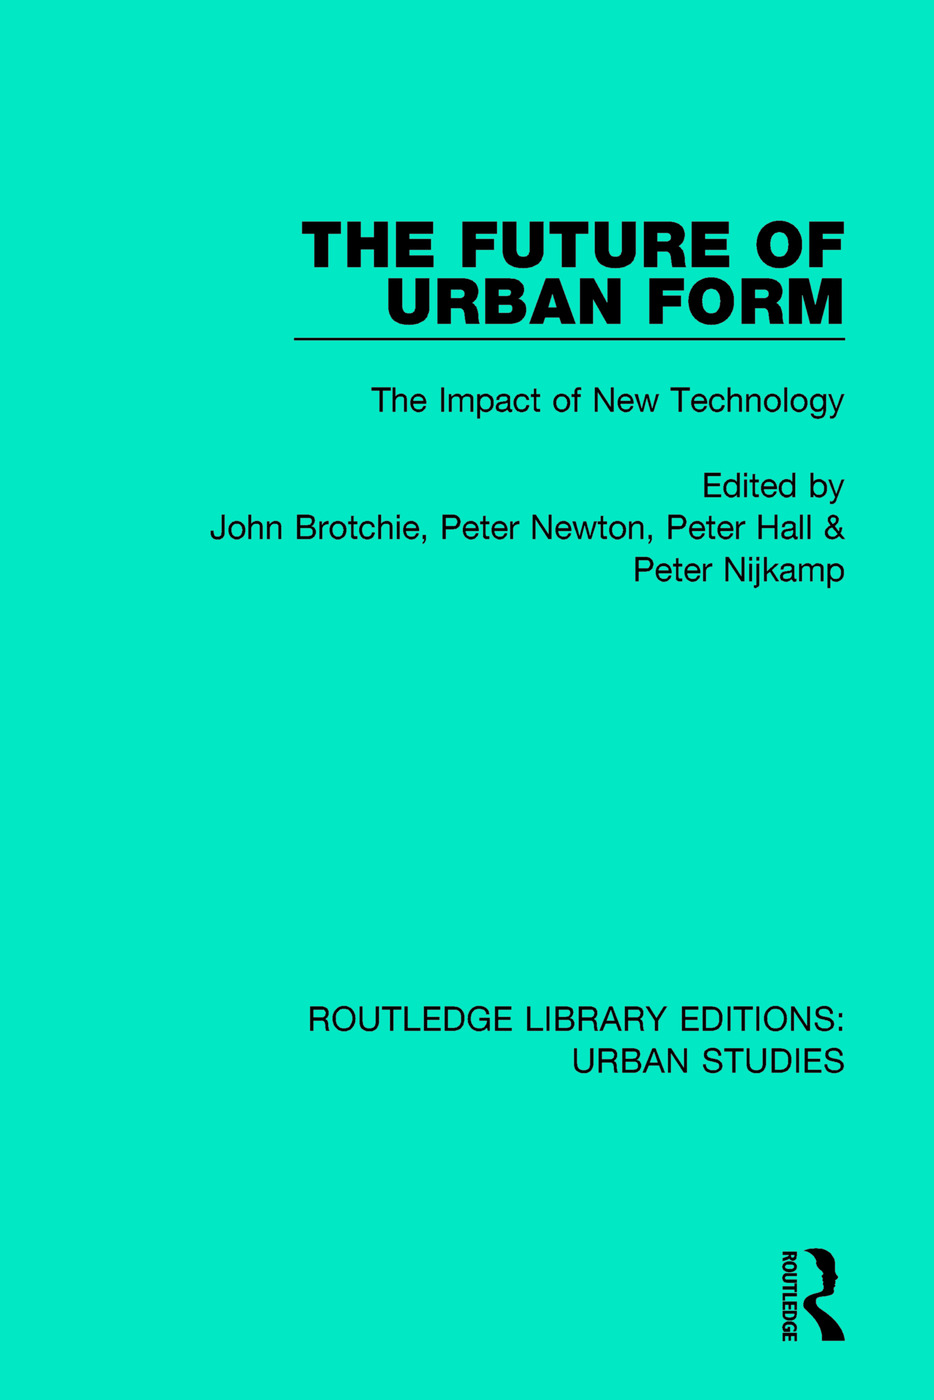 The Future of Urban Form